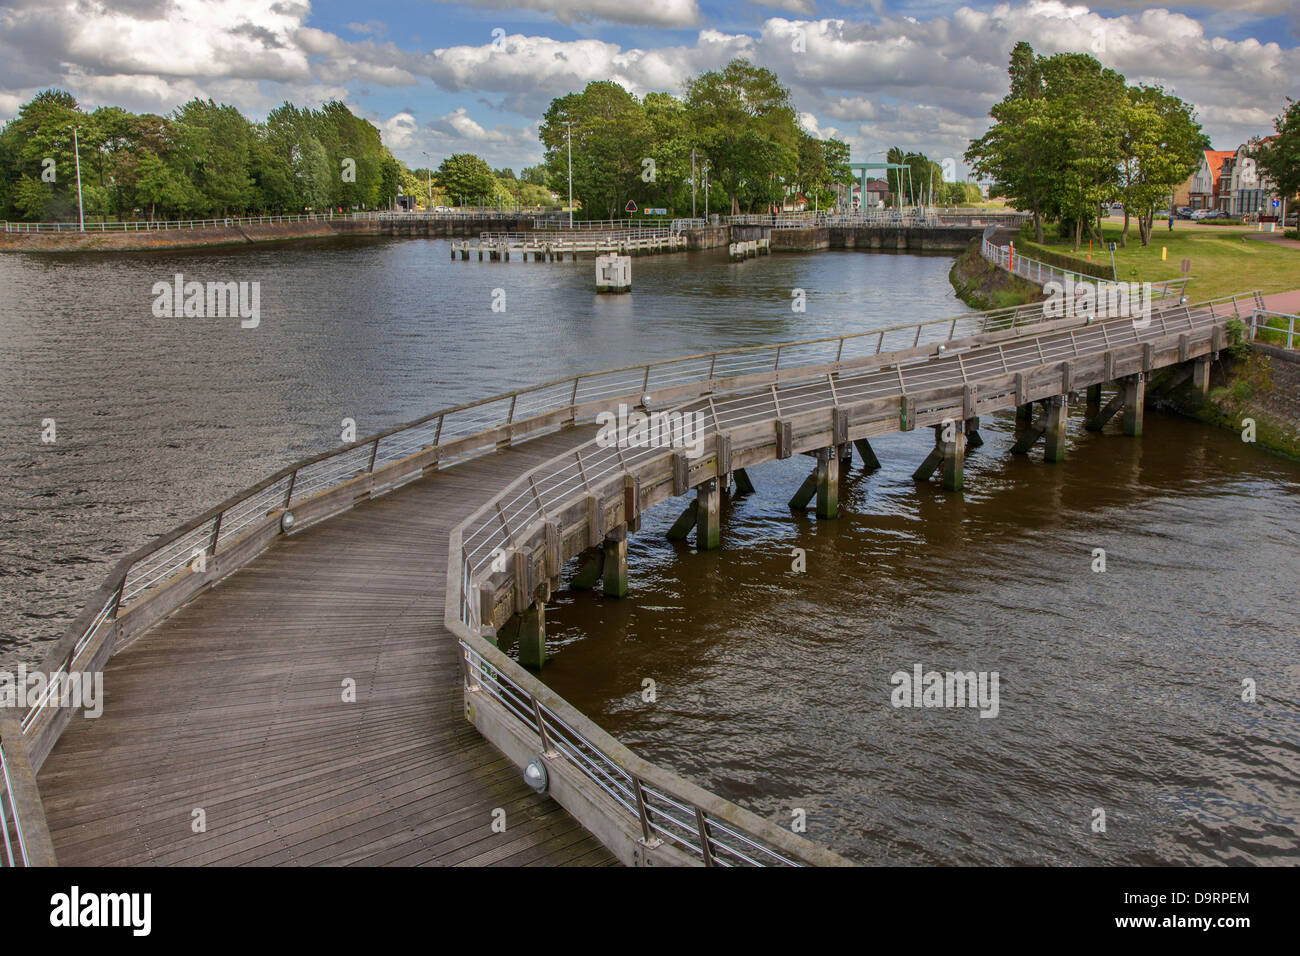 The river IJzer / Yser at the sluice complex Ganzenpoot / Goose Foot in Nieuwpoort / Nieuport, West Flanders, Belgium - Stock Image